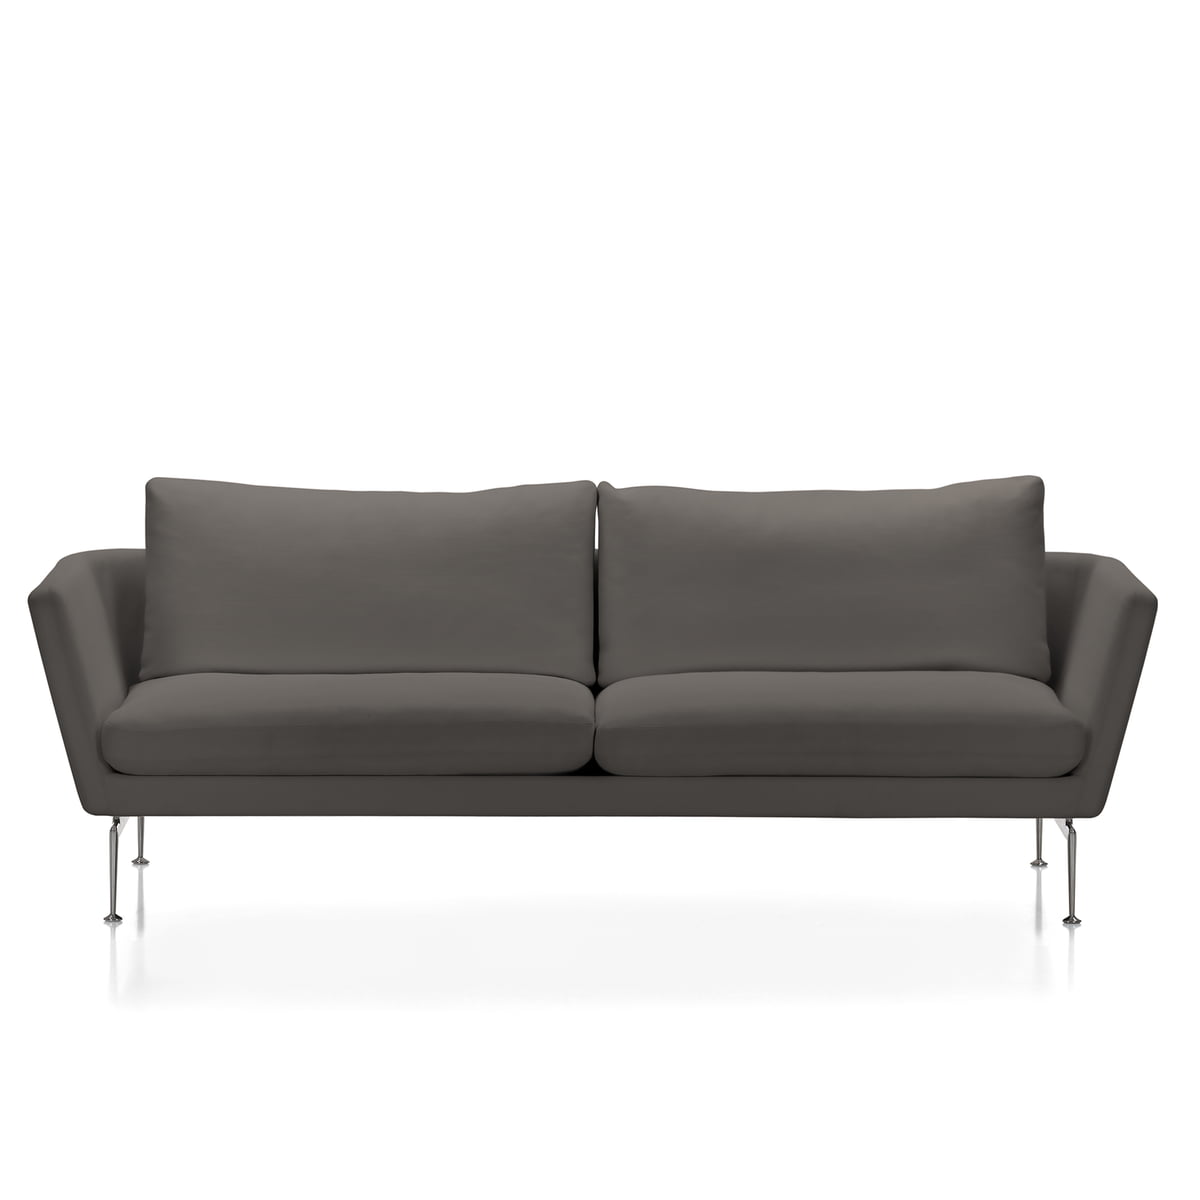 vitra suita sofa 3 sitzer classic weich bezug dumet. Black Bedroom Furniture Sets. Home Design Ideas